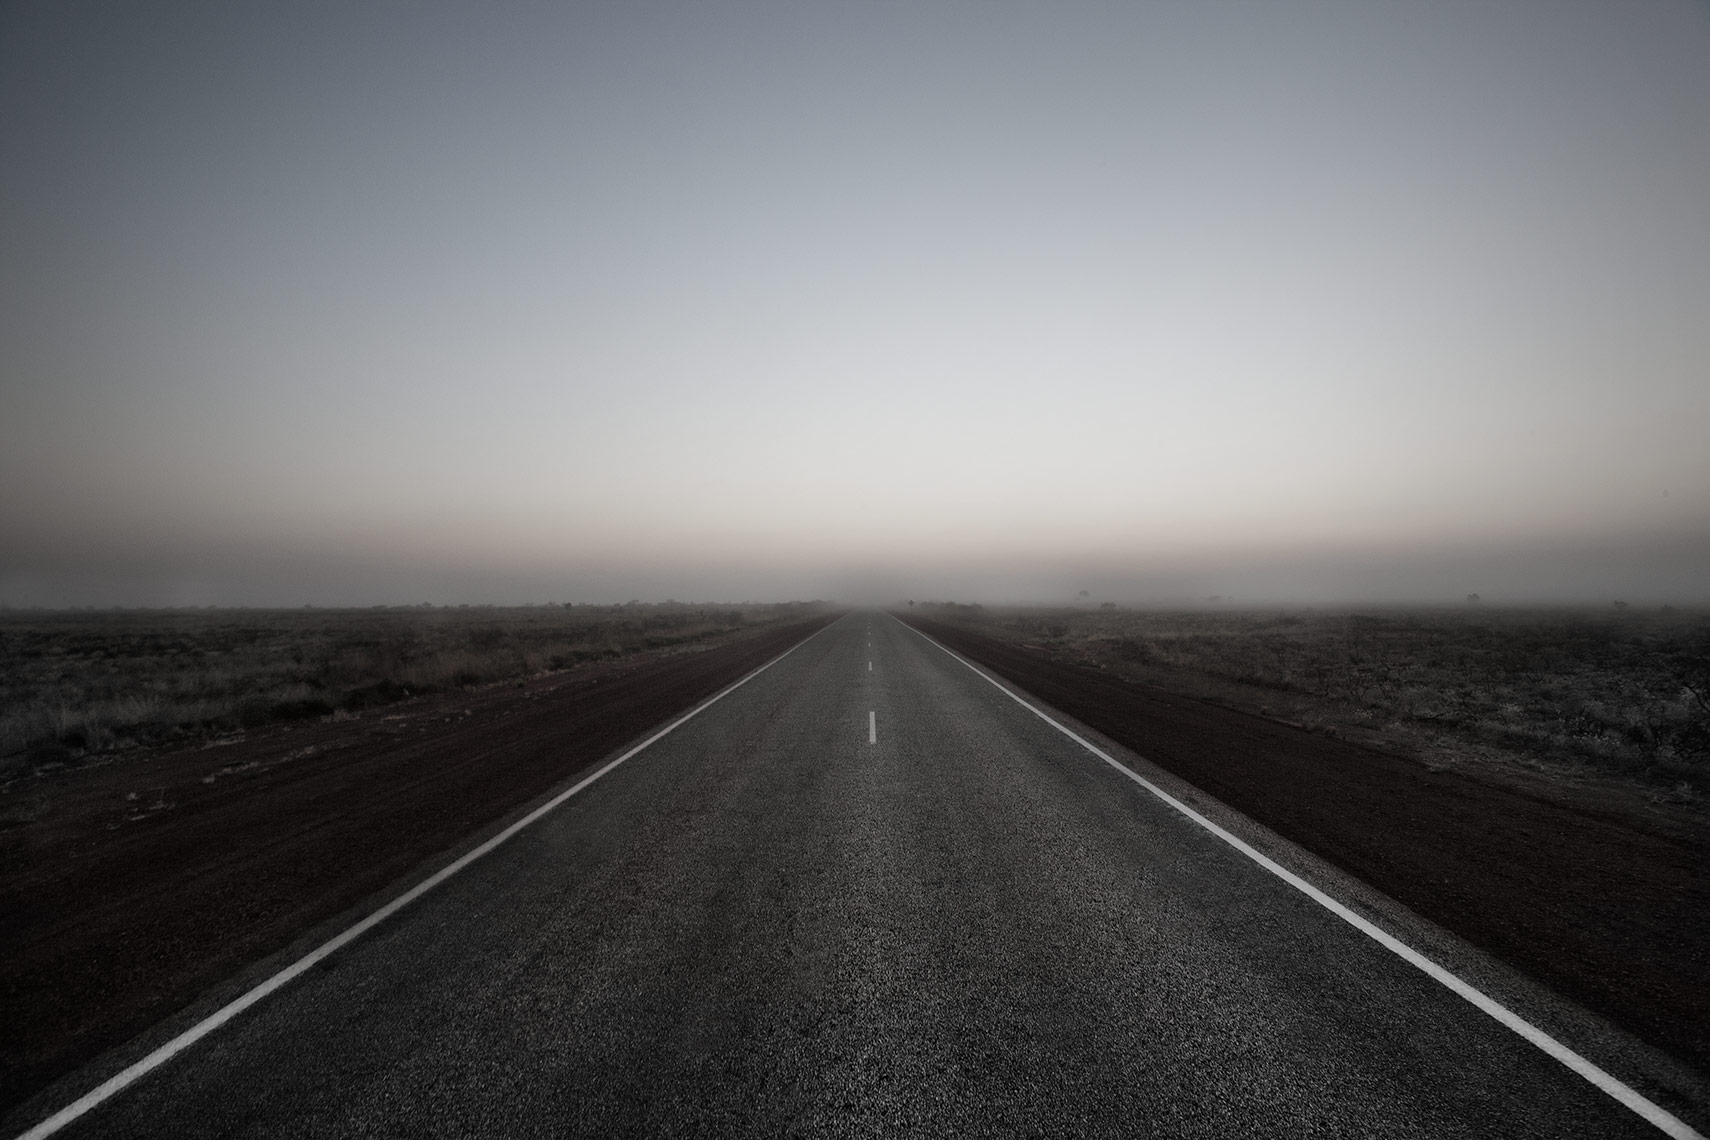 Outback road in Western Australia at dawn